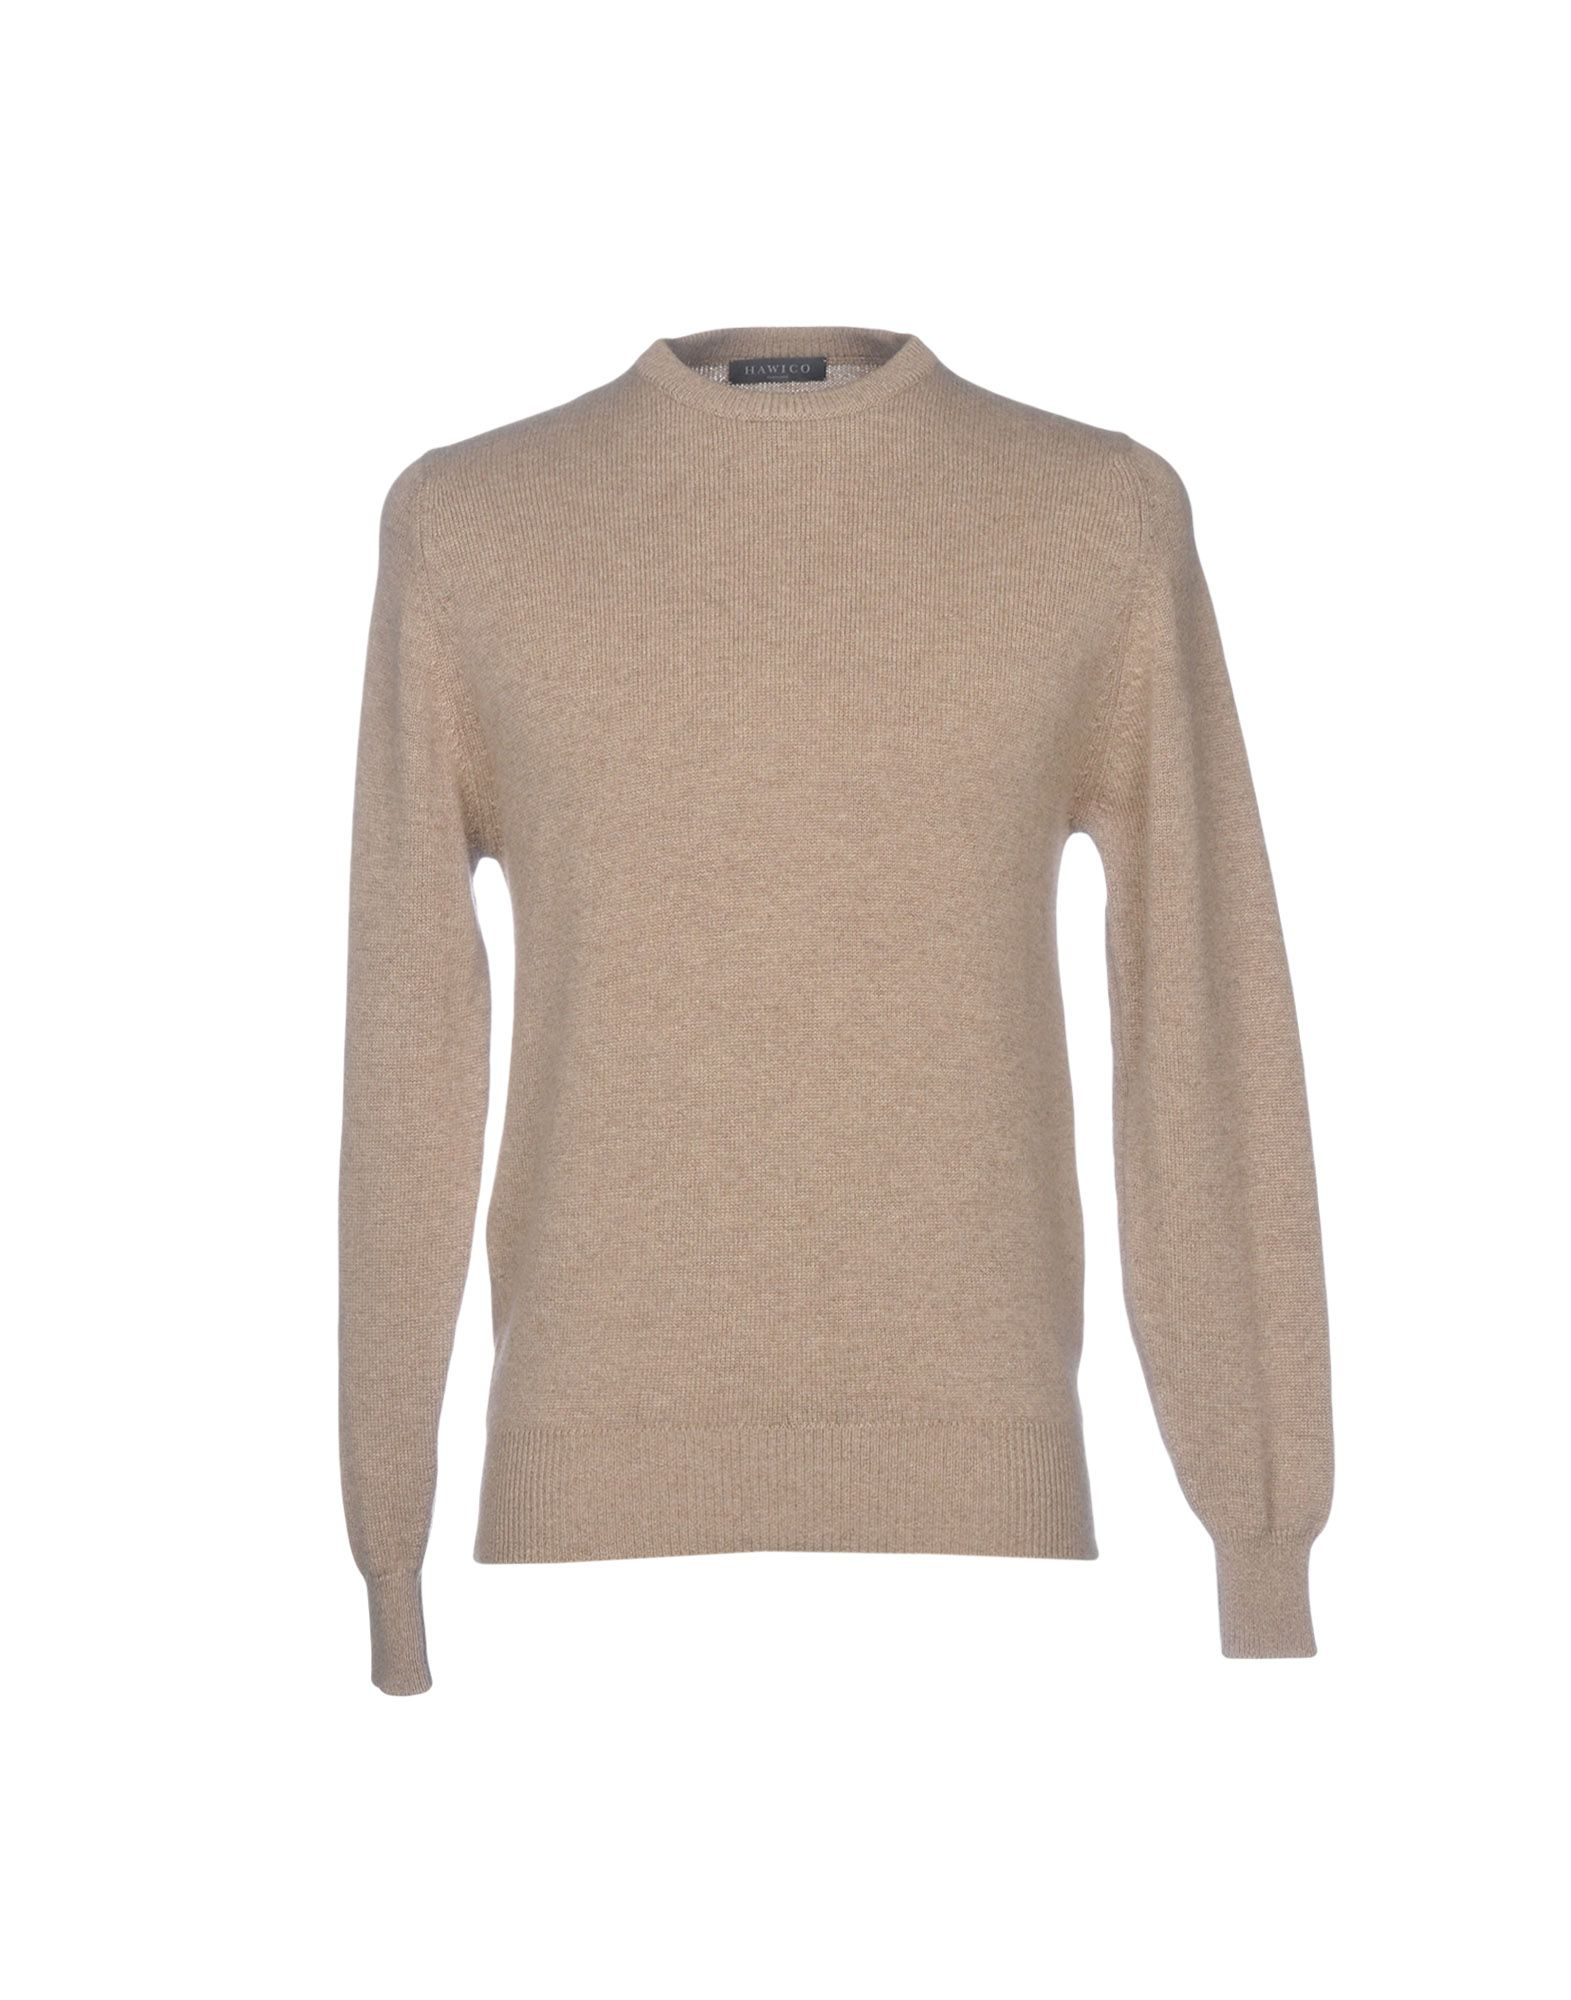 HAWICO Cashmere Blend in Sand